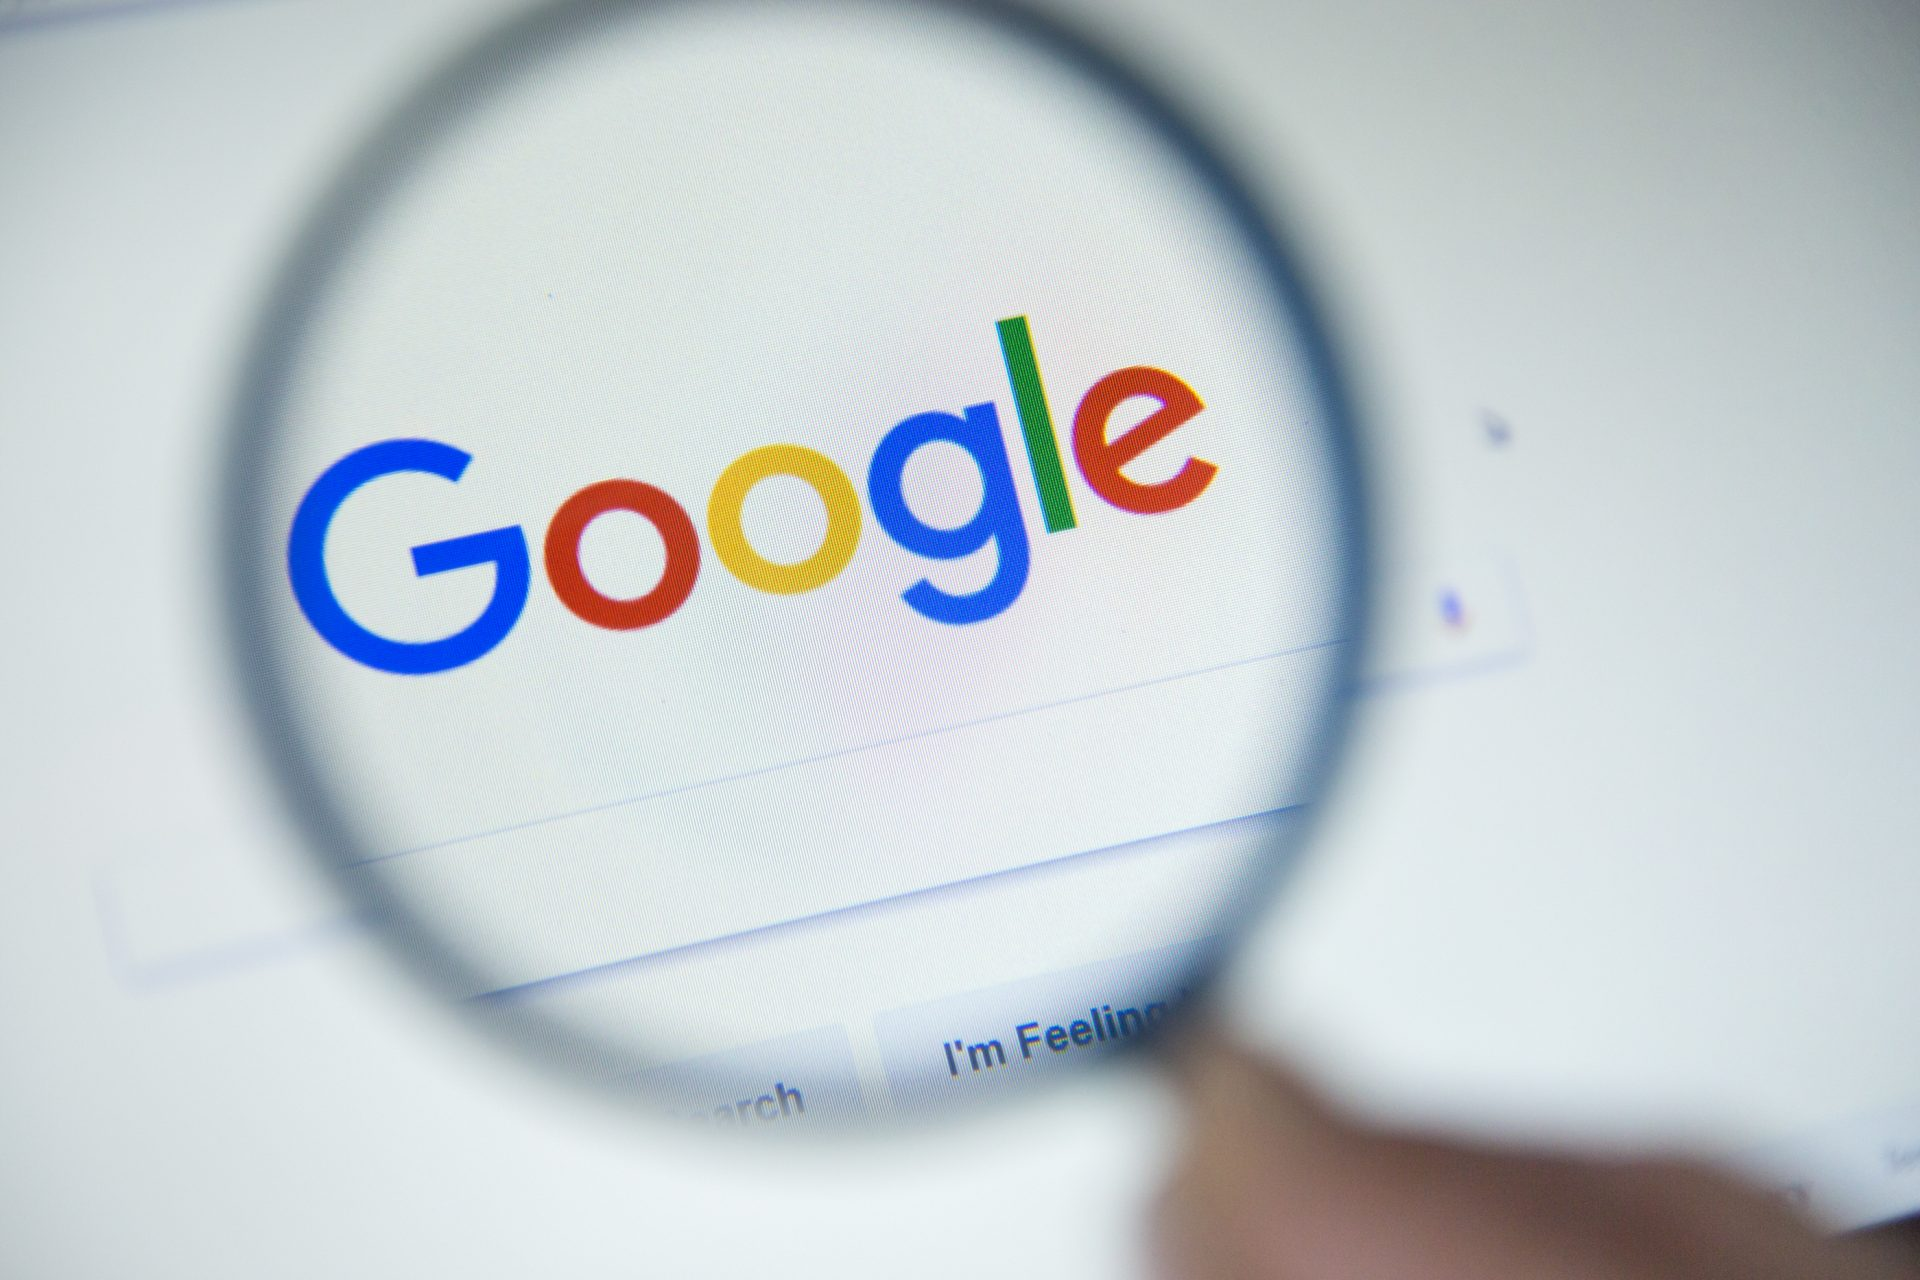 google-finance-now-lists-bitcoin-first-ahead-of-top-forex-currencies-bitcoinistcom